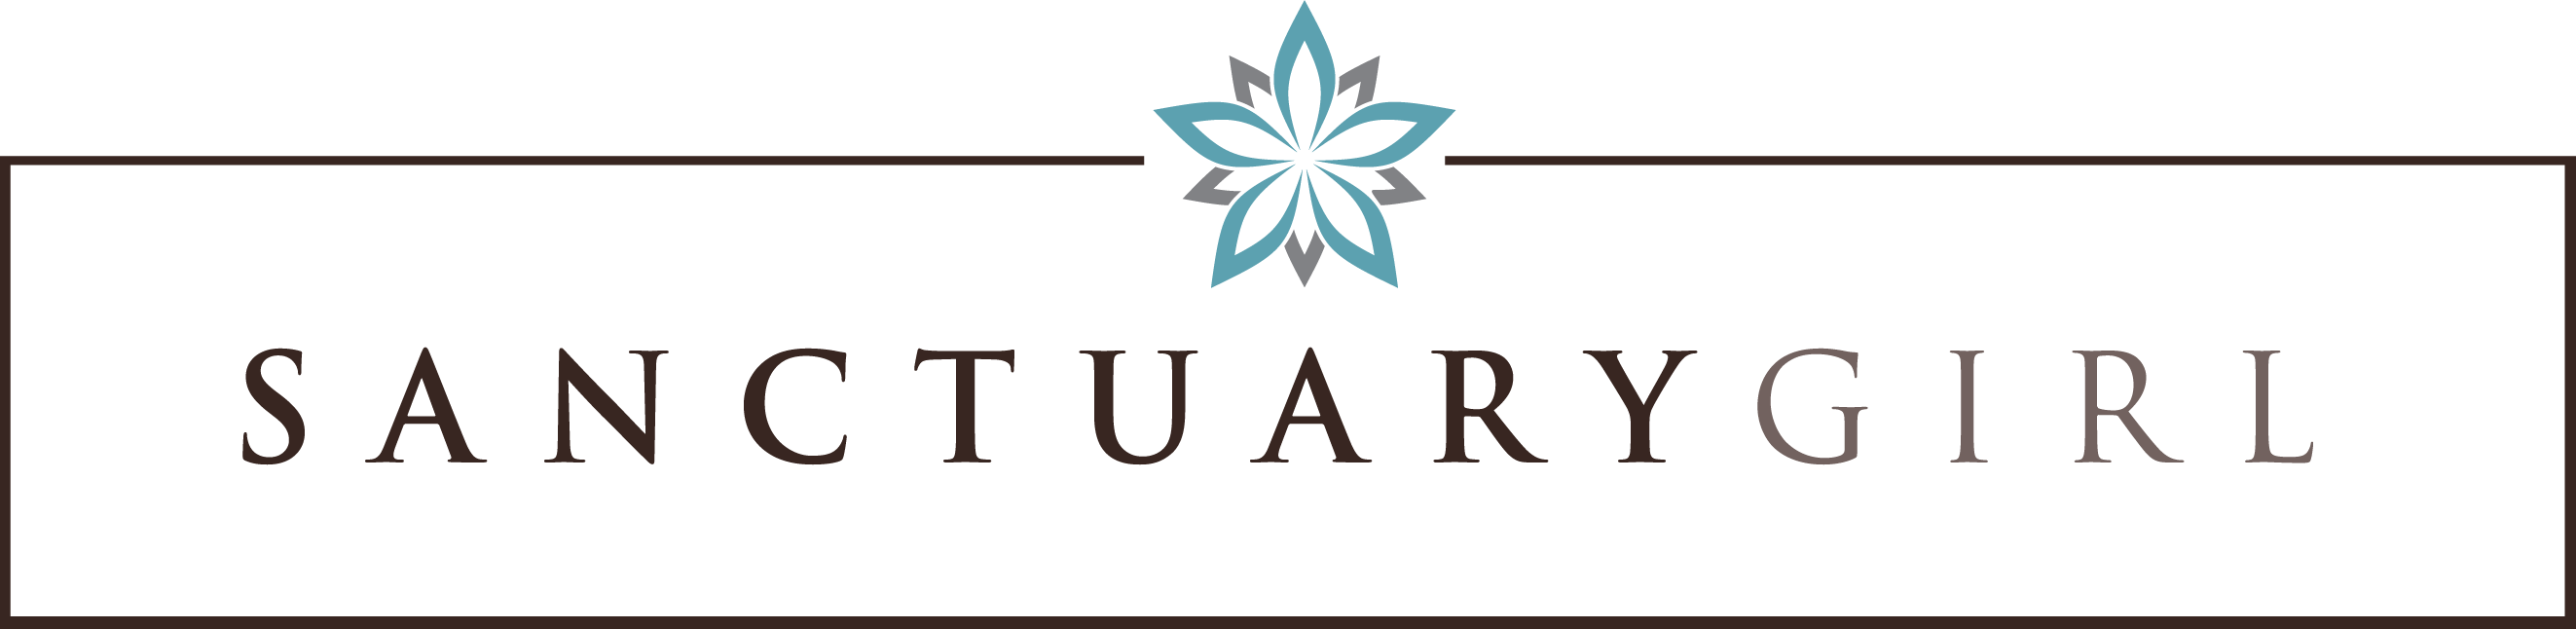 Sanctuary Girl logo